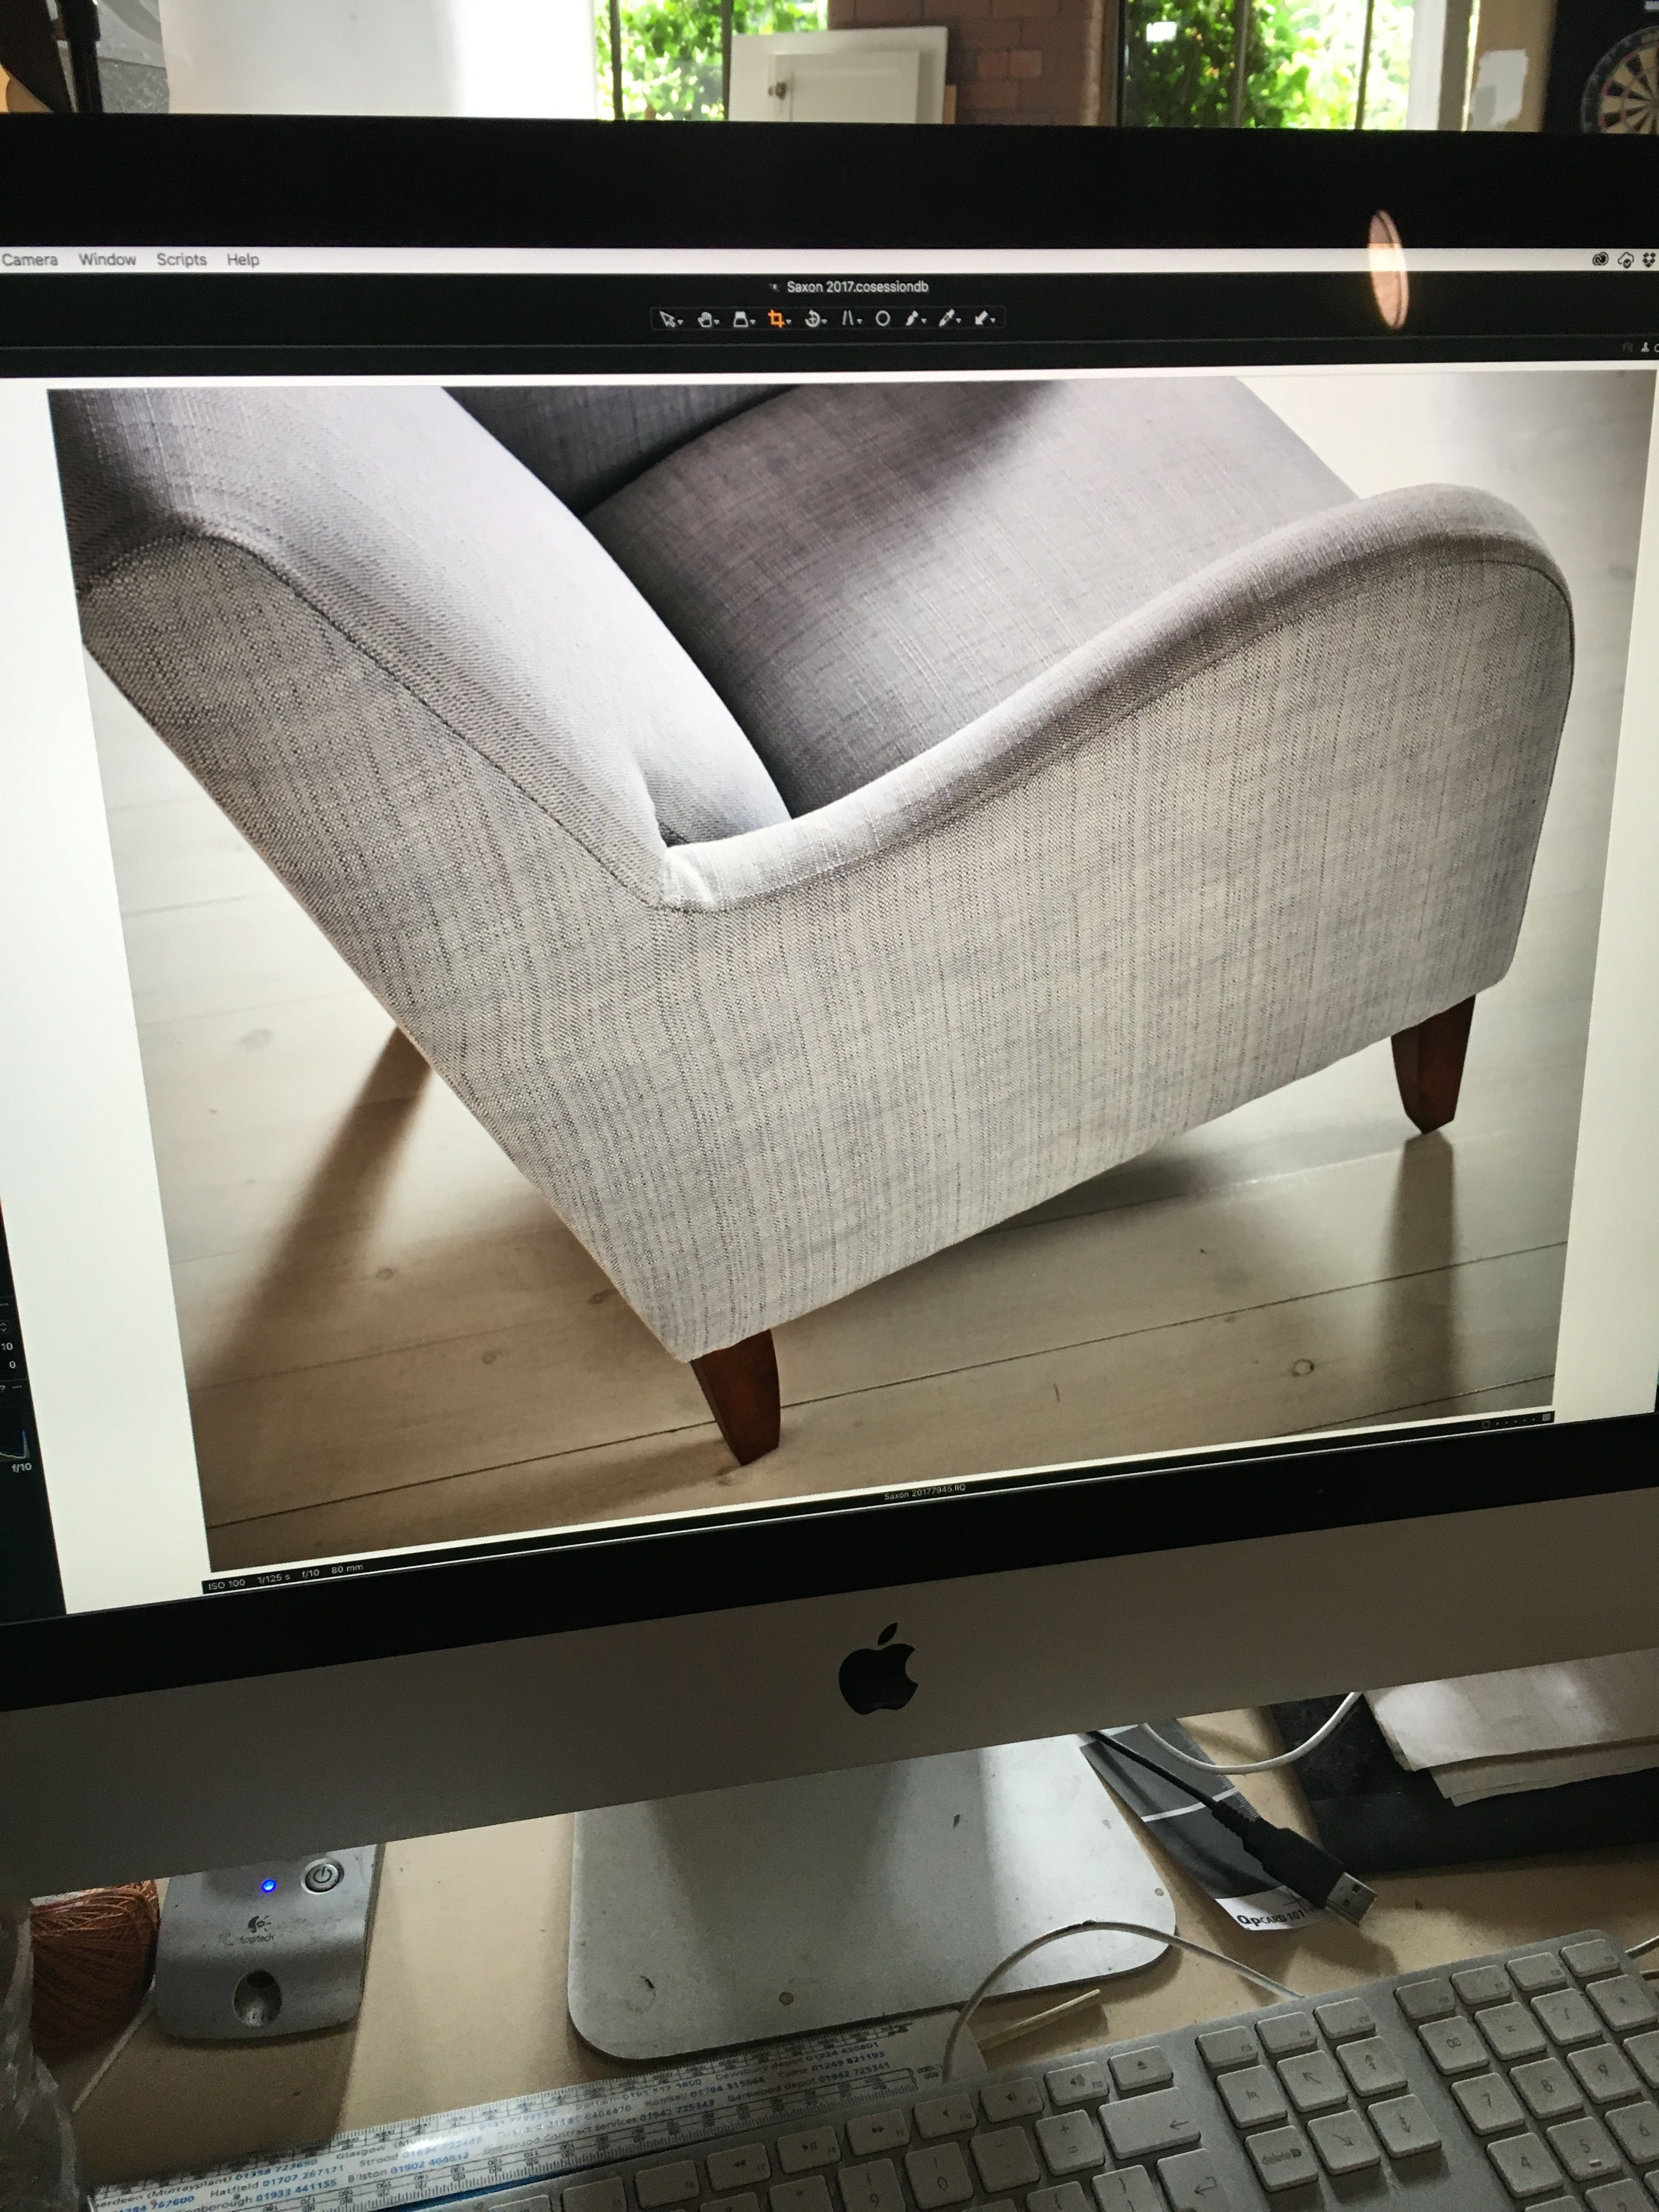 Our Accent Chairs - Lovely Curves